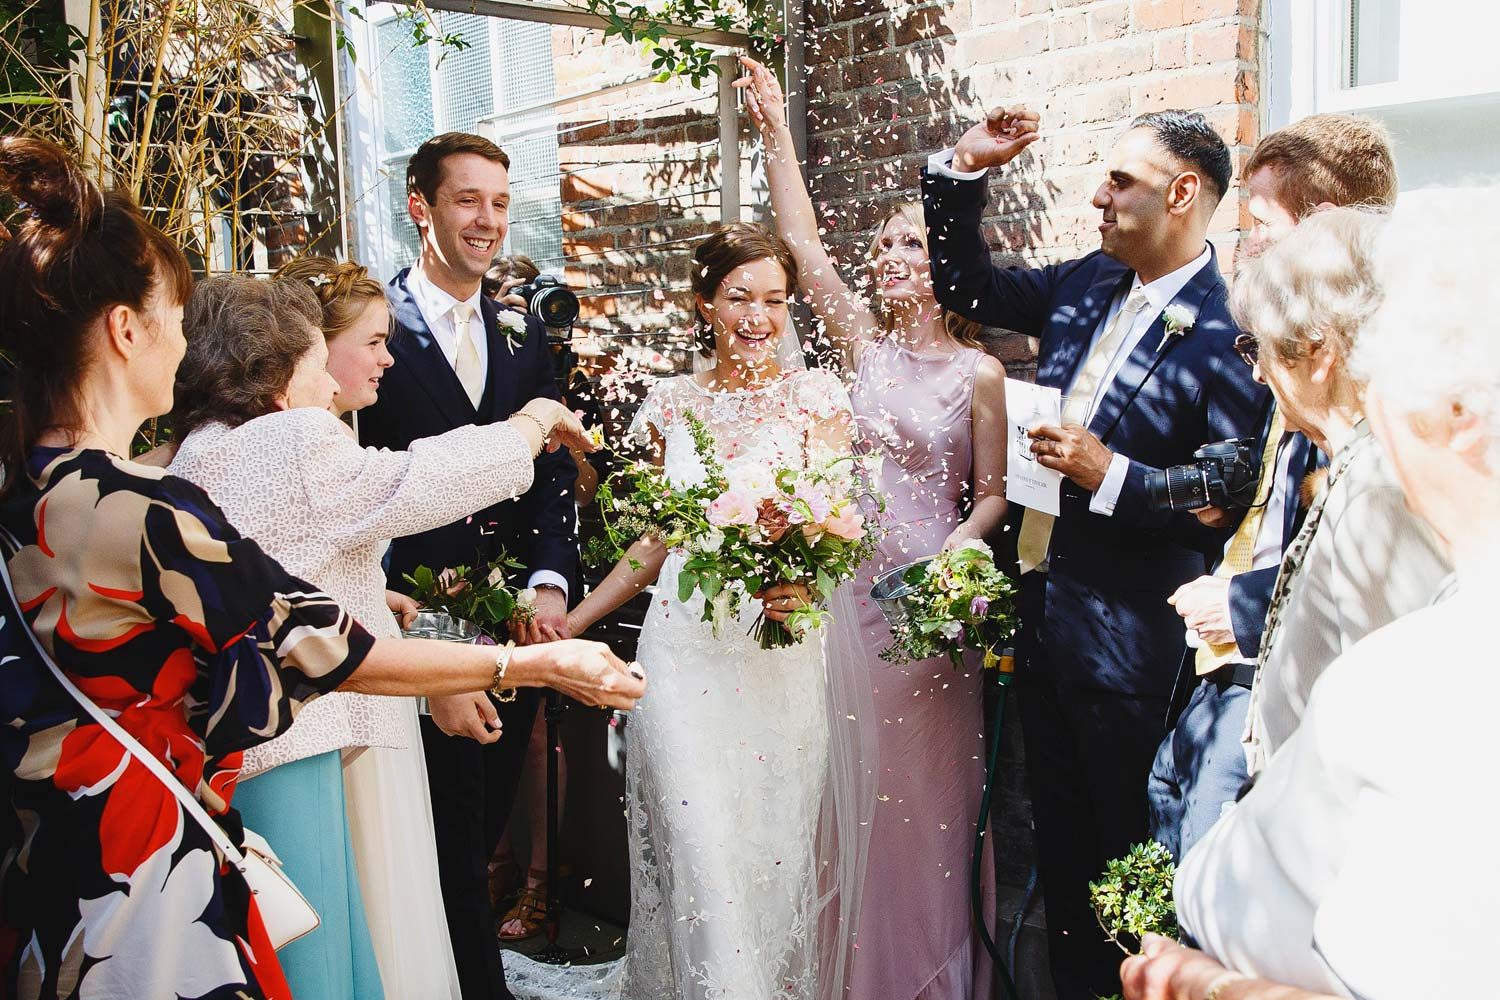 A bride and groom walk through confetti at Burgh House Museum - London wedding photographer